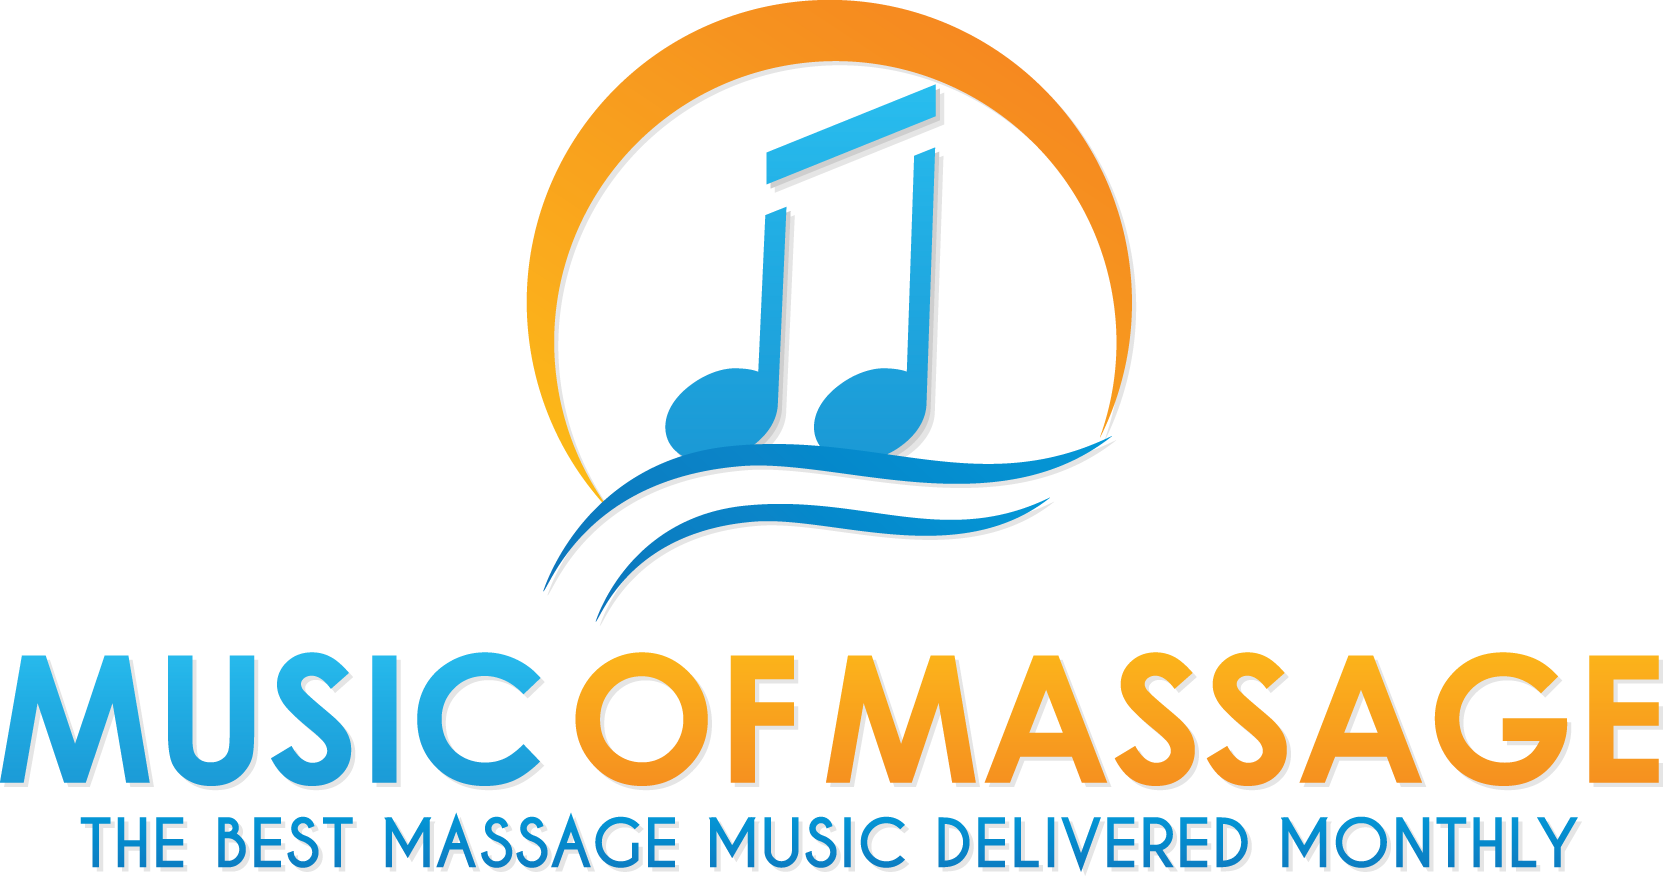 music of message music logo png #2355